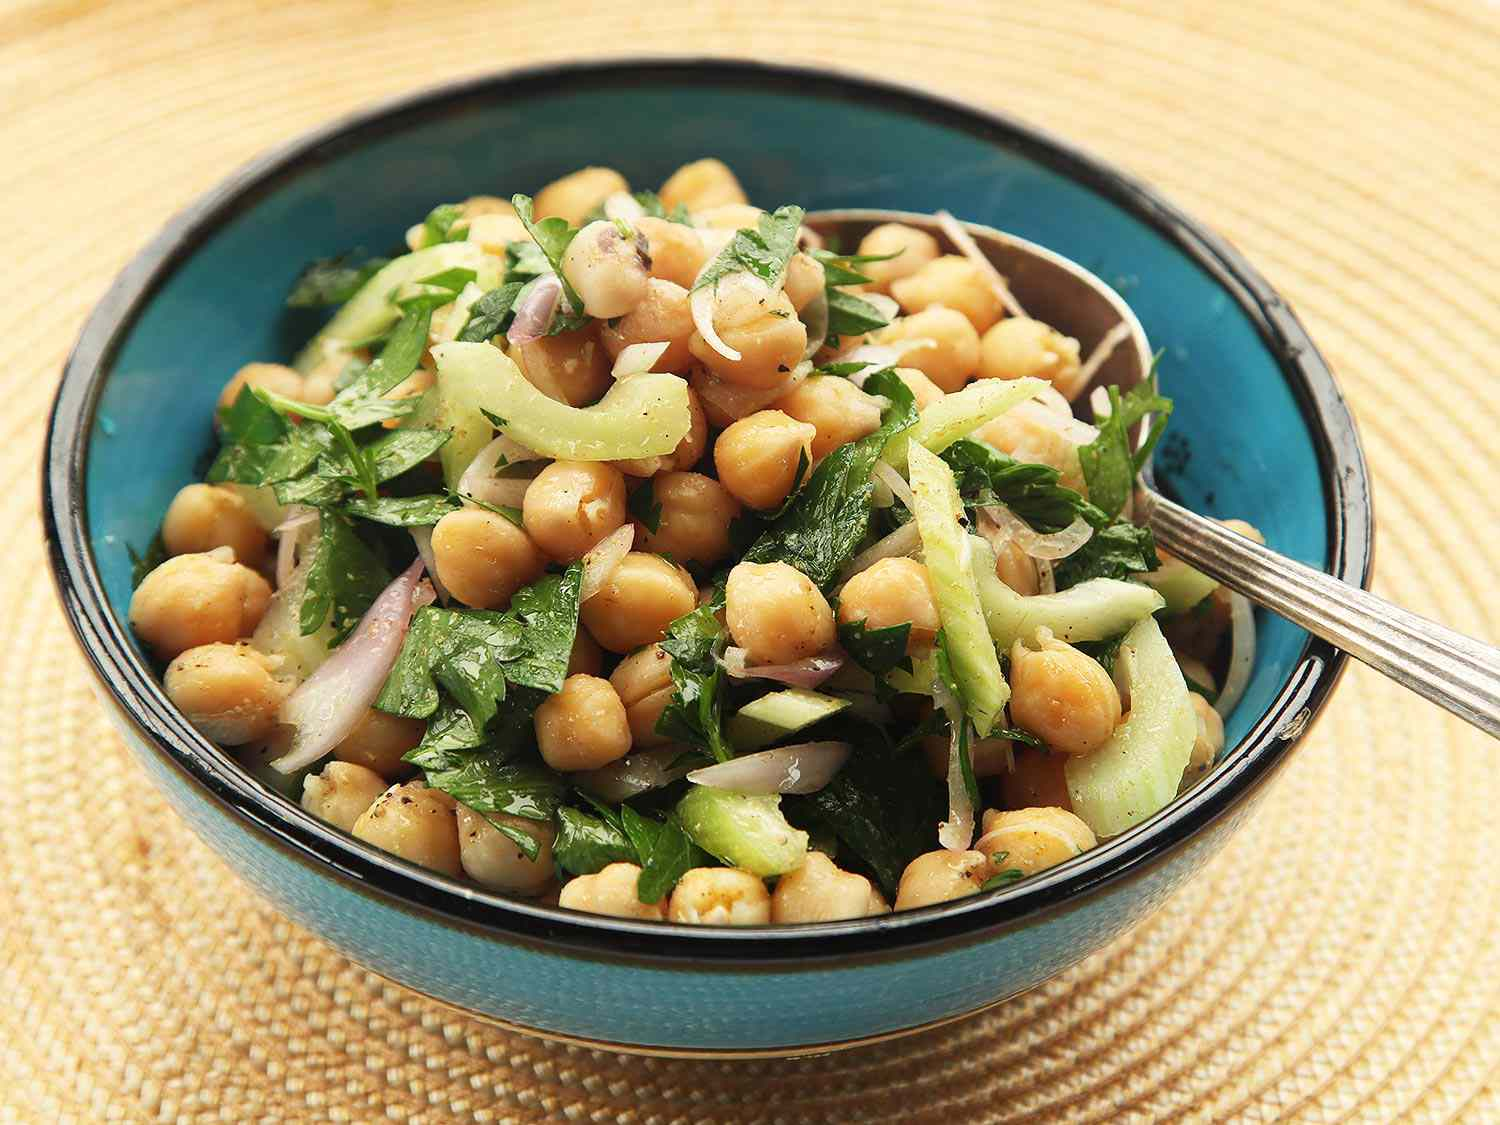 Chickpea and cumin salad in a blue and black bowl.